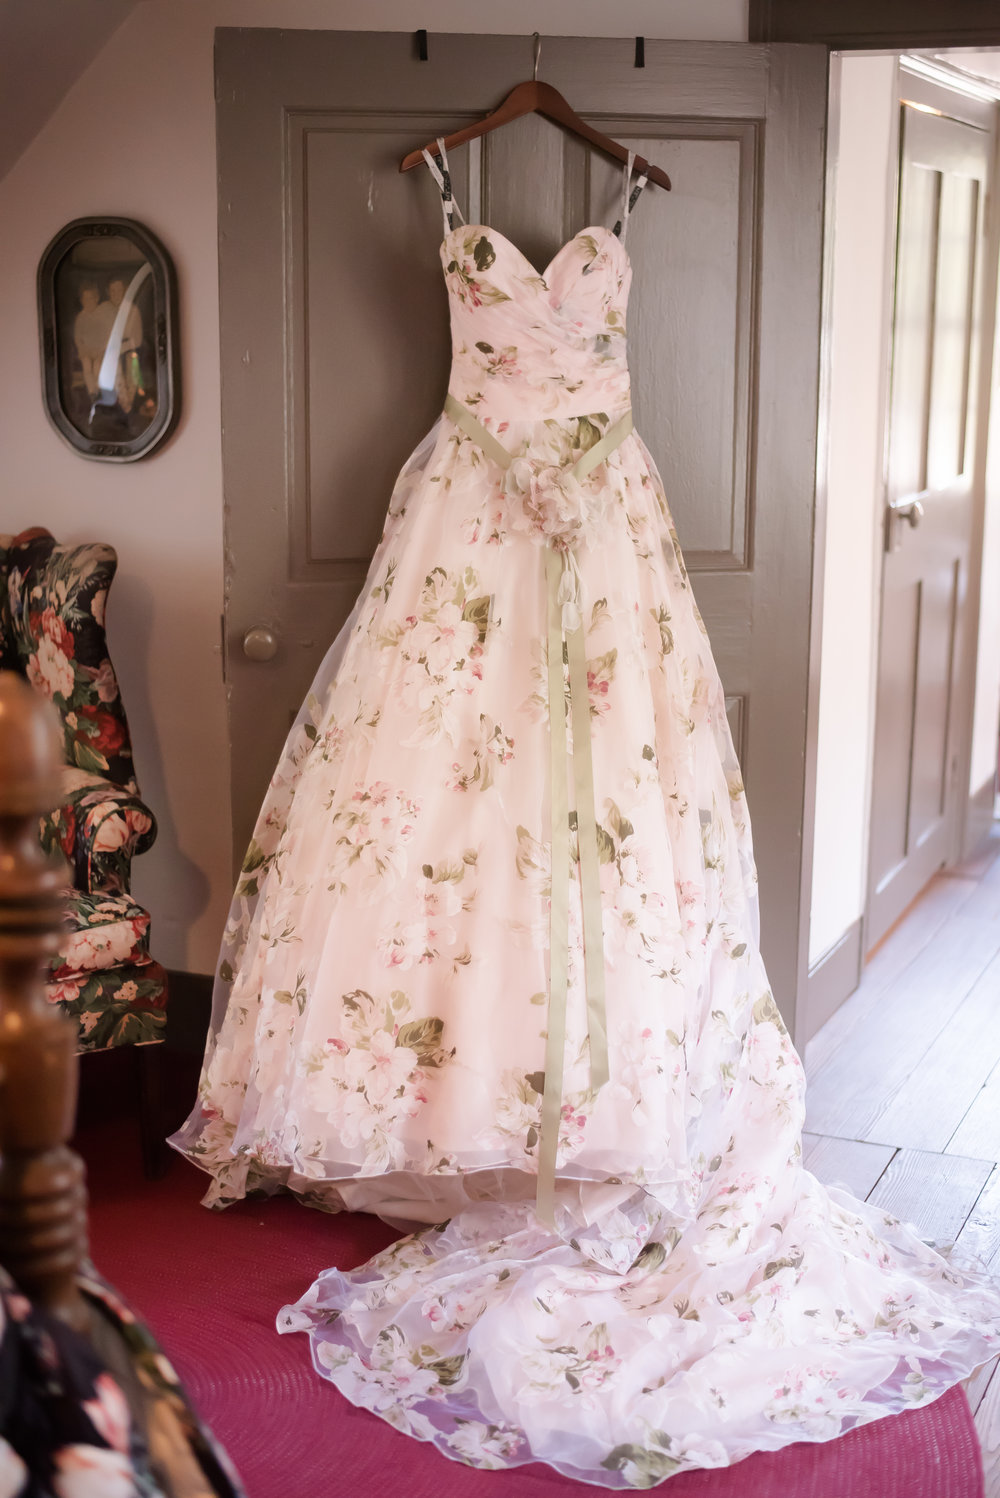 midsummers-eve-wedding-floral-blush-dress-david-tutera-cary-hill-plantation-photo-virginia-bride-11.jpg